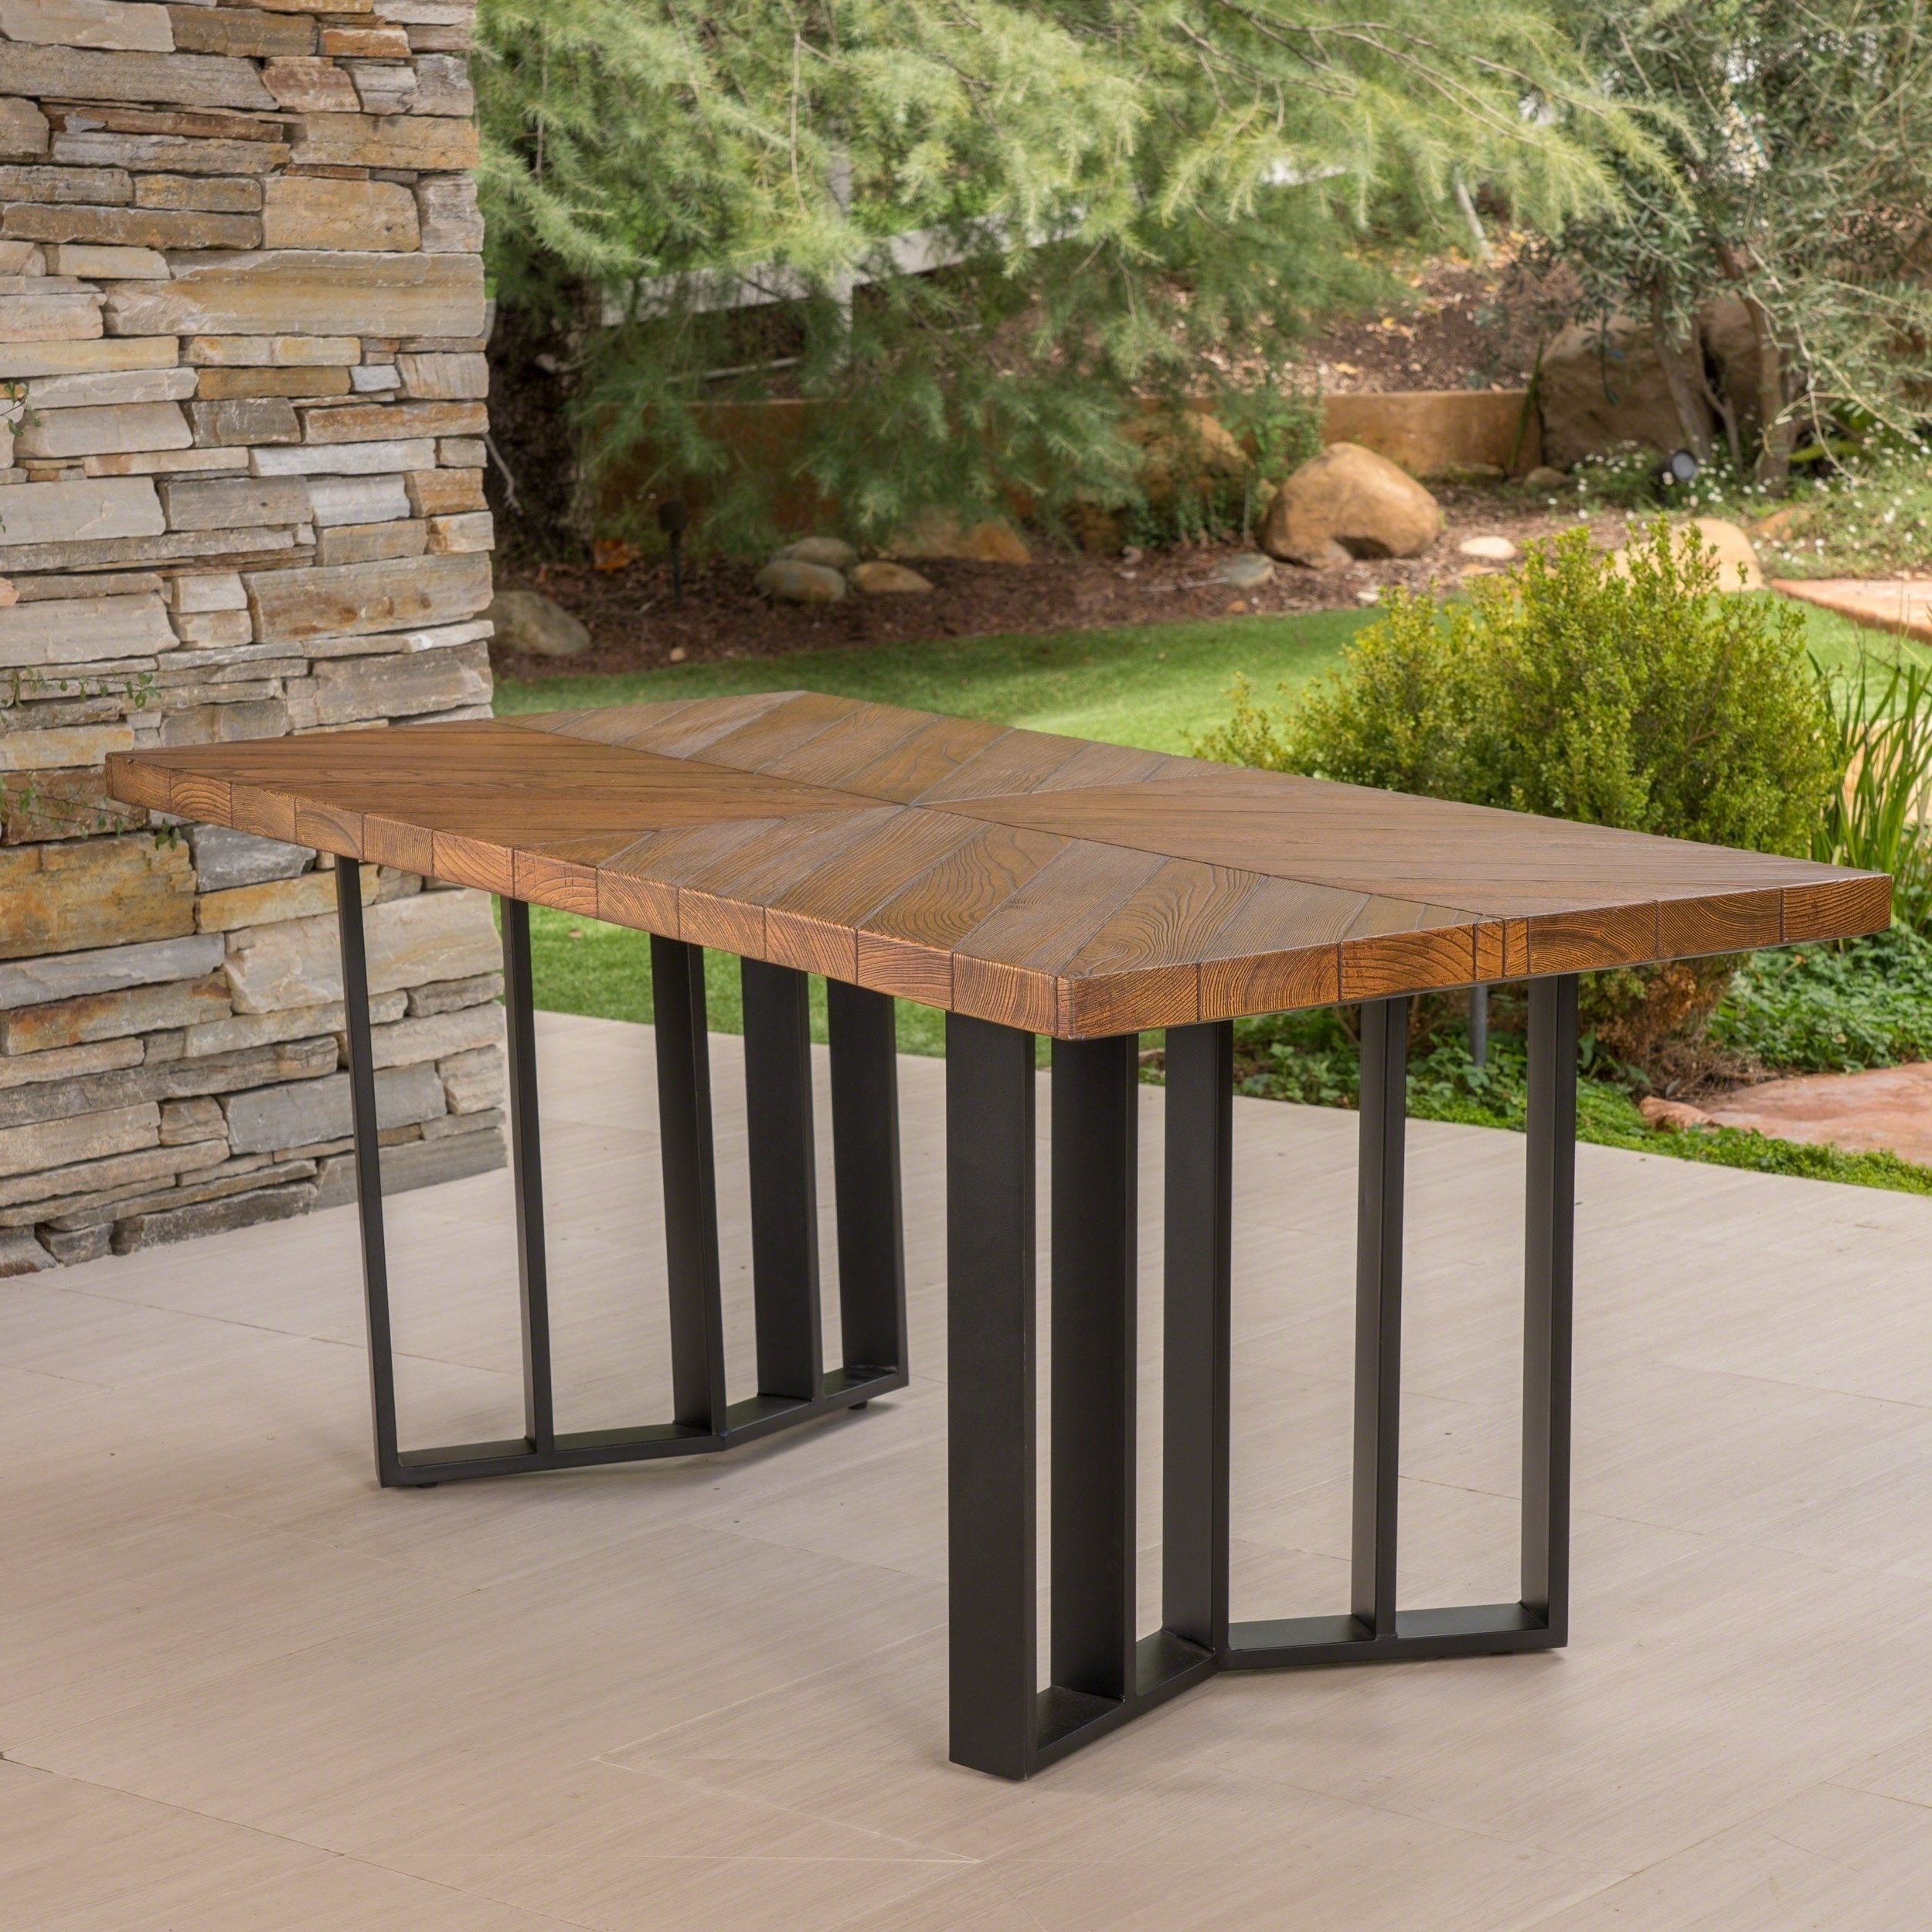 Verona Dining Tables For Widely Used Shop Verona Outdoor Rectangle Light Weight Concrete Dining Table (Gallery 12 of 25)